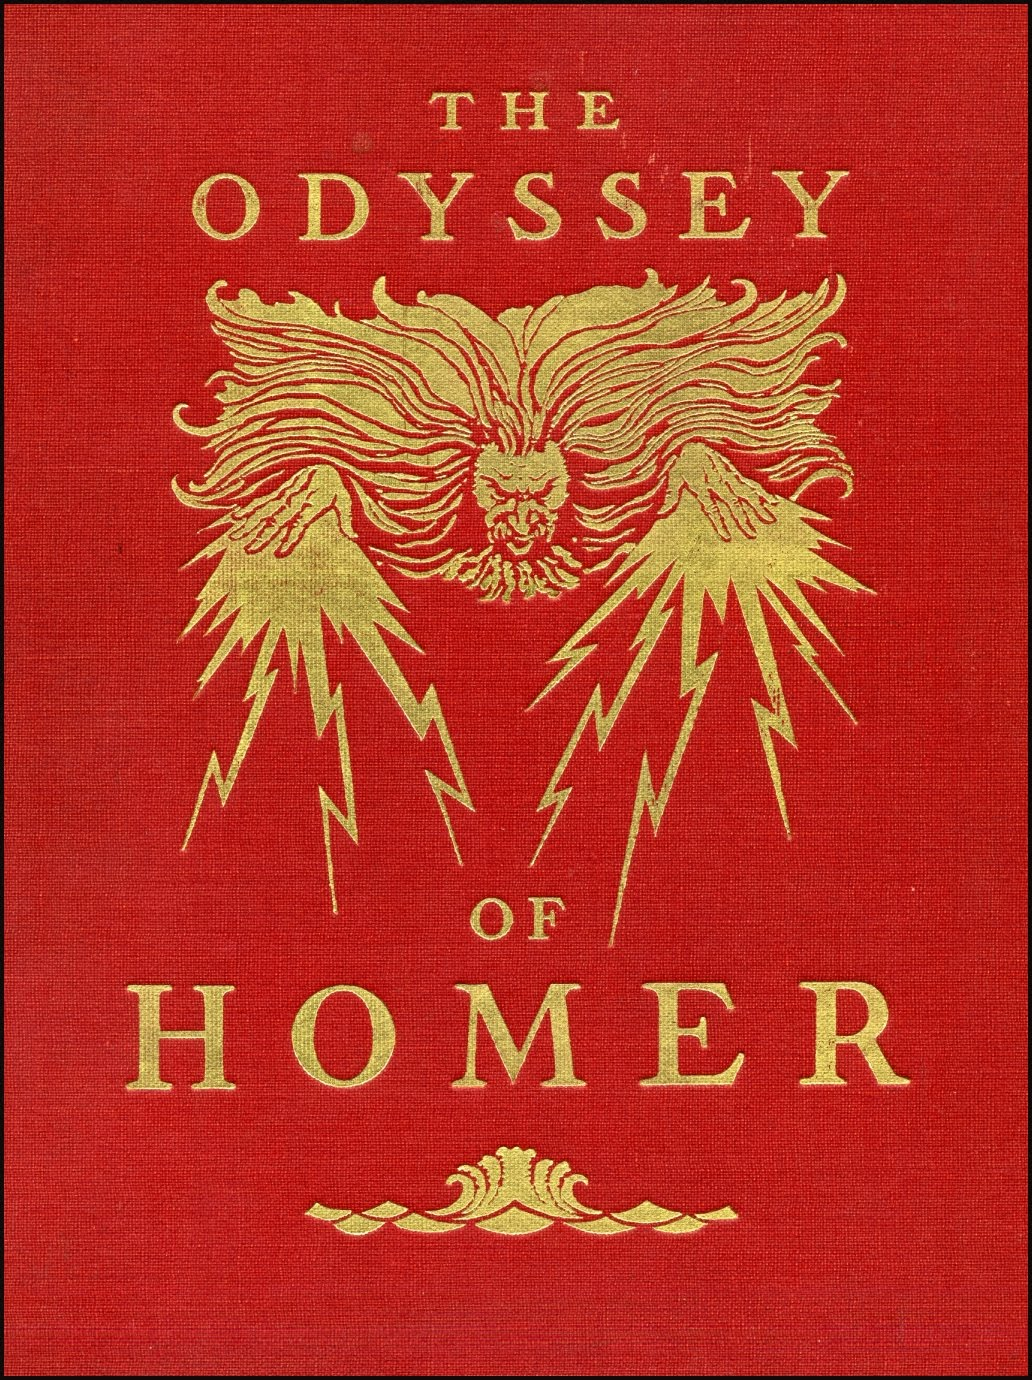 the role of the gods in the odyssey by homer Once again, the character of athena plays a vital role in homer's iconic poem, the odyssey one of the most powerful gods in the greek pantheon , she sprang fully-formed and dressed in battle.